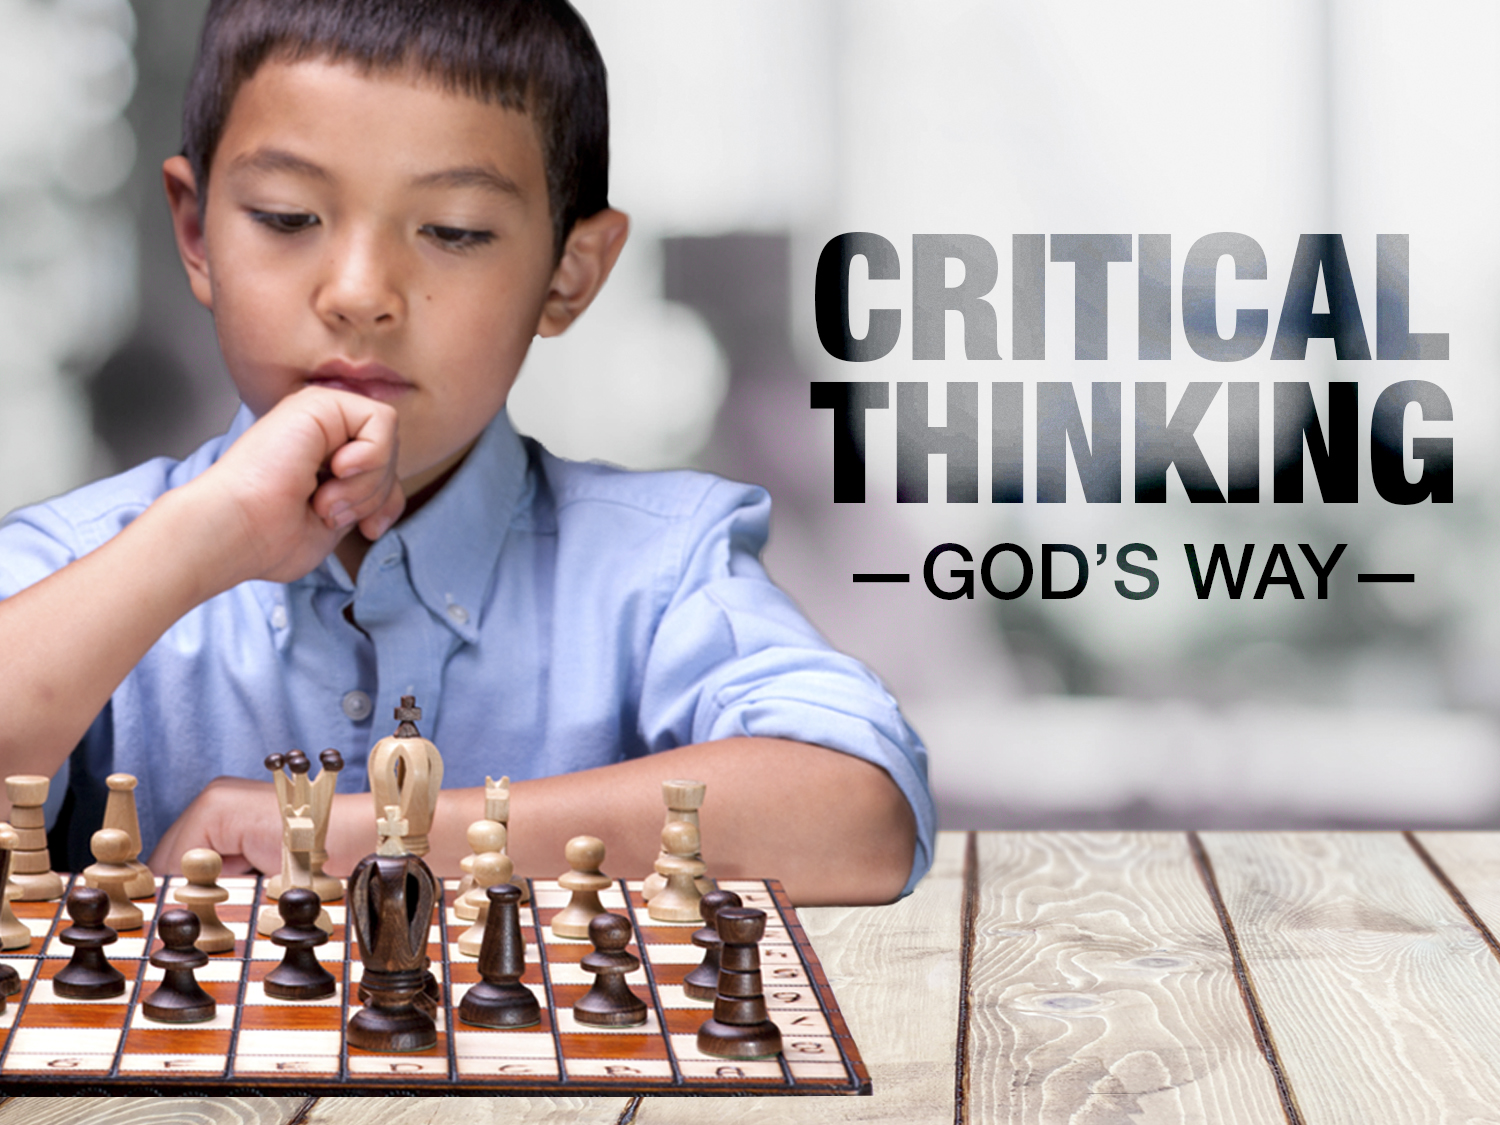 Critical Thinking - God's Way